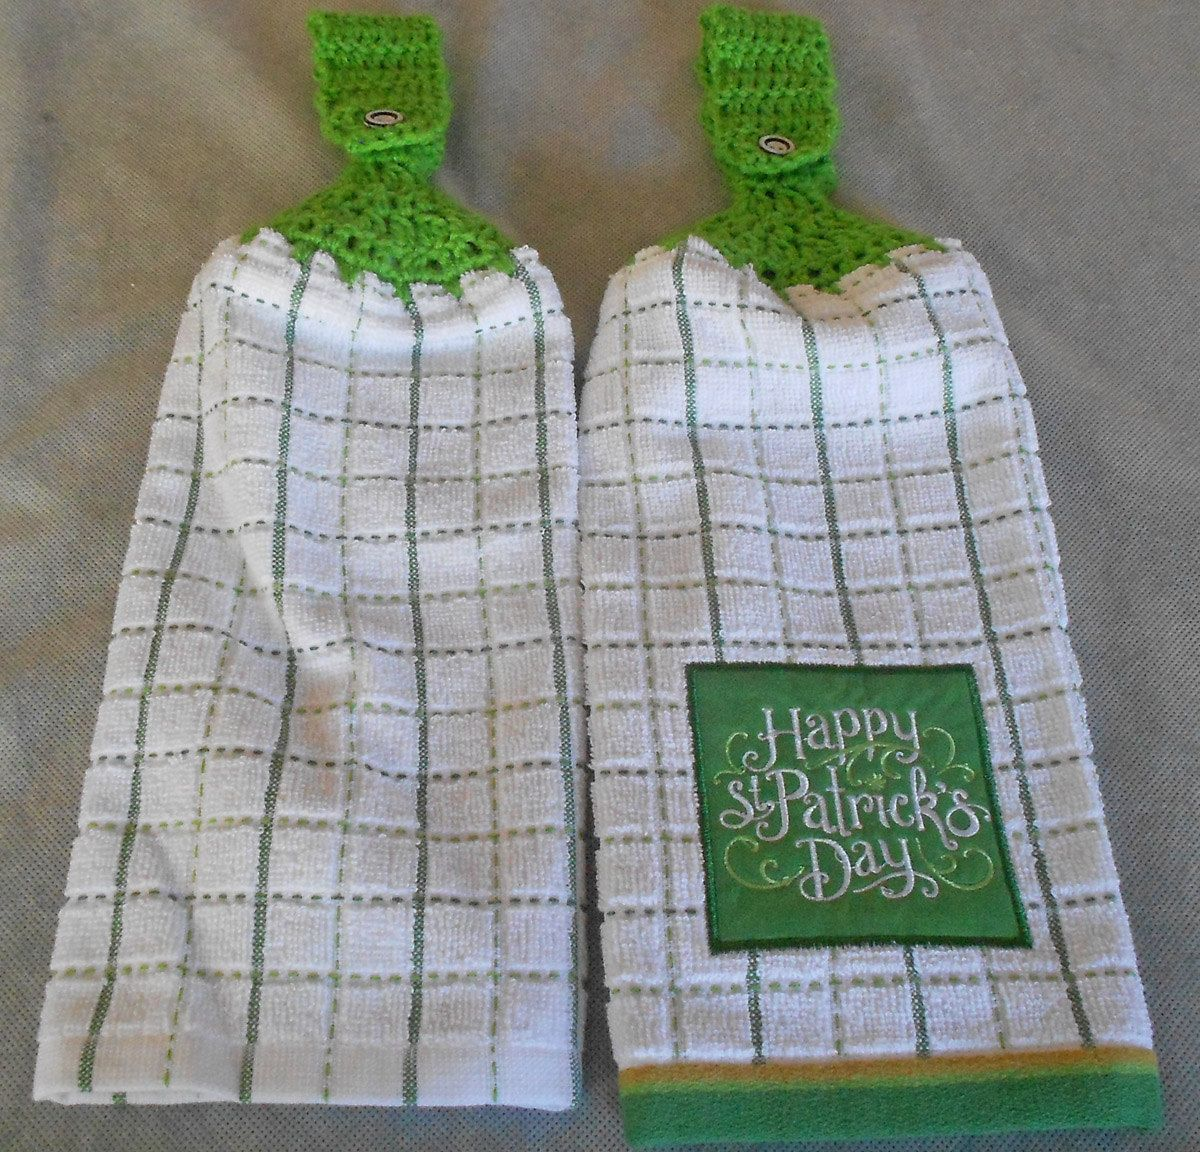 St. Patrick's Day Crochet Top Towels - St. Patty's Day Hand towels - Handle Top Irish Towels - Irish Granny Towels - Irish Hanging Towels by CrochetByIlene on Etsy